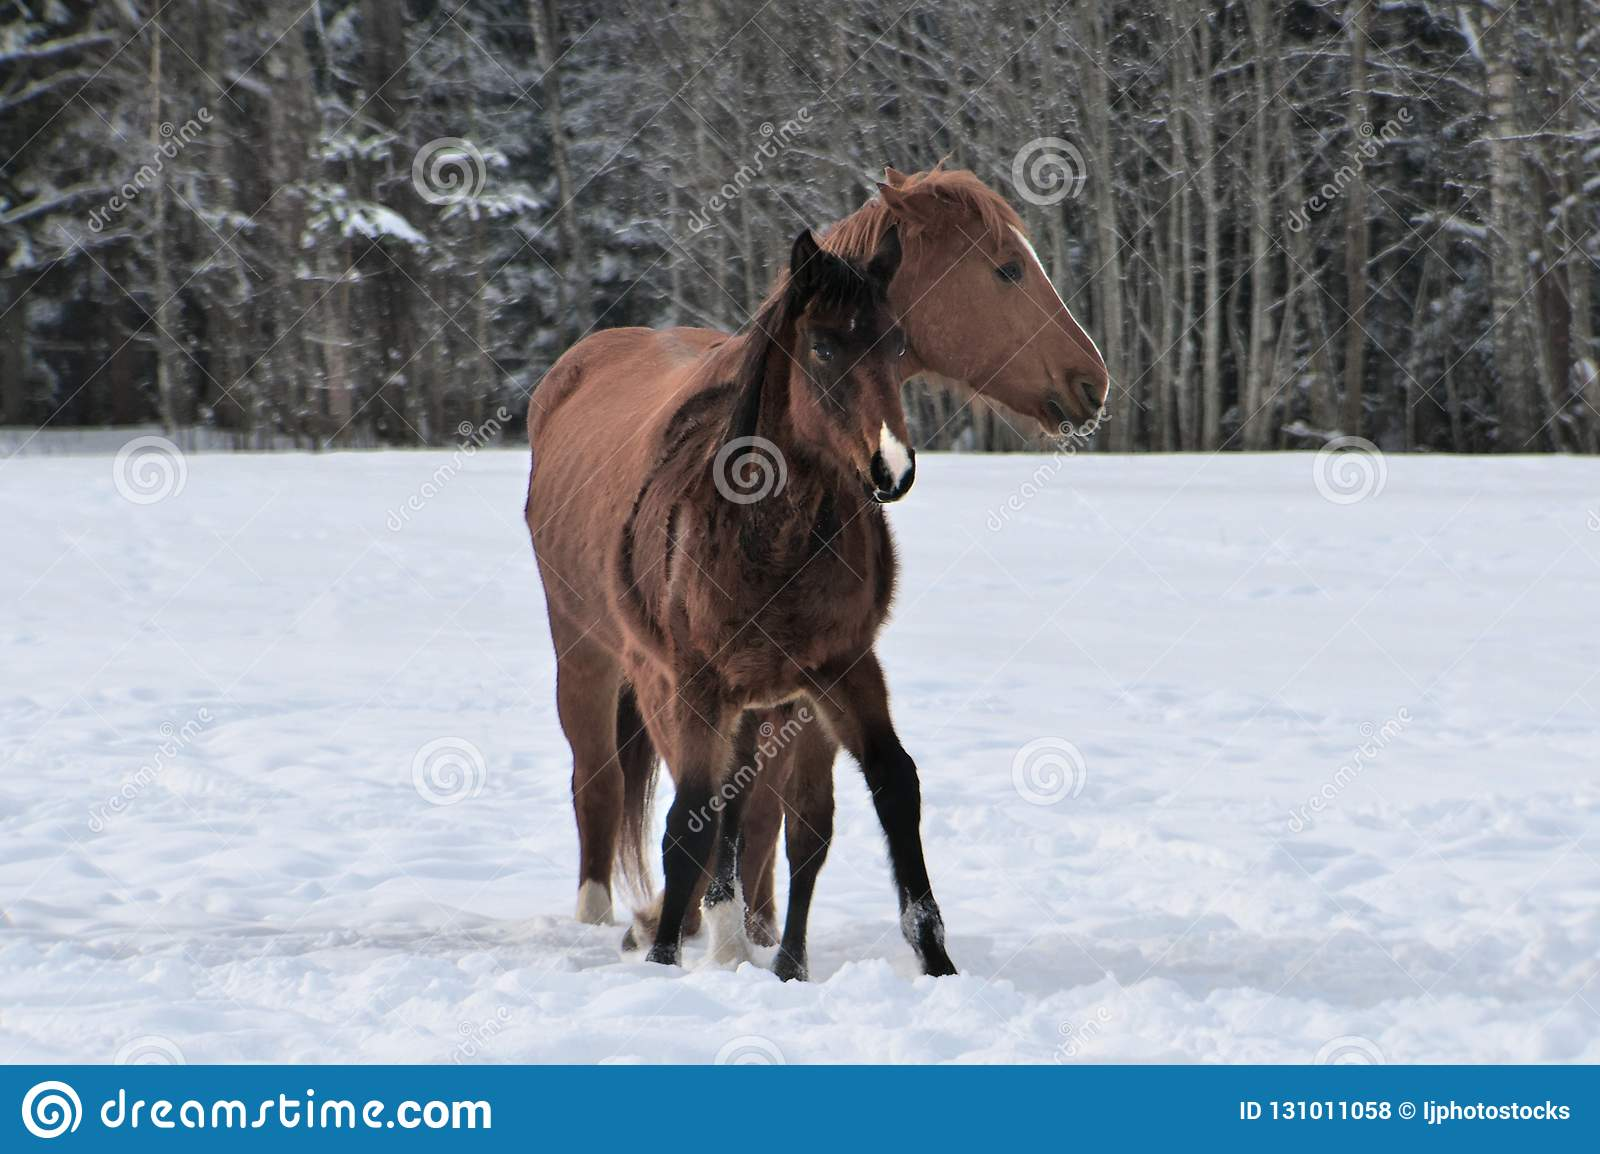 Two Horses Wearing Winter Coats Playing In Snow Covered Paddock Stock Photo Image Of Strip Young 131011058